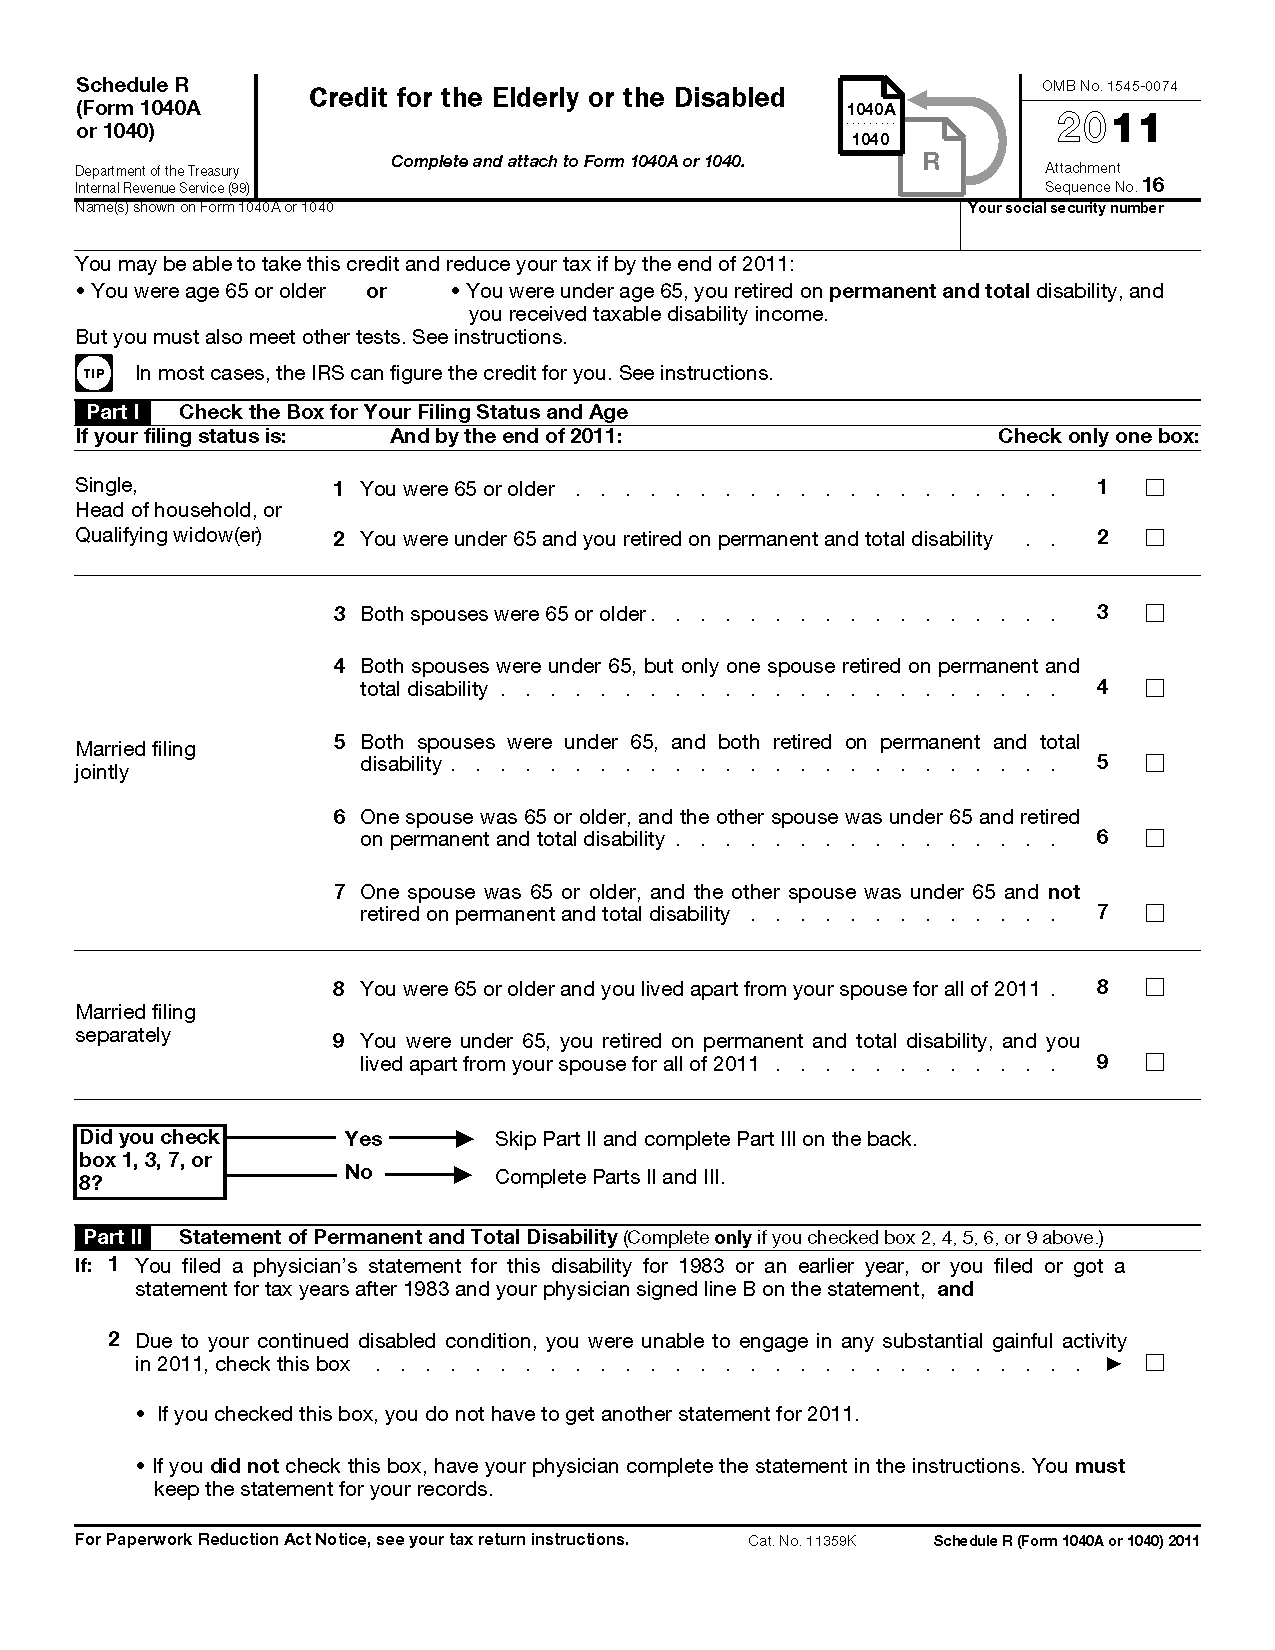 Irs American Opportunity Credit Limit Worksheet - Worksheets